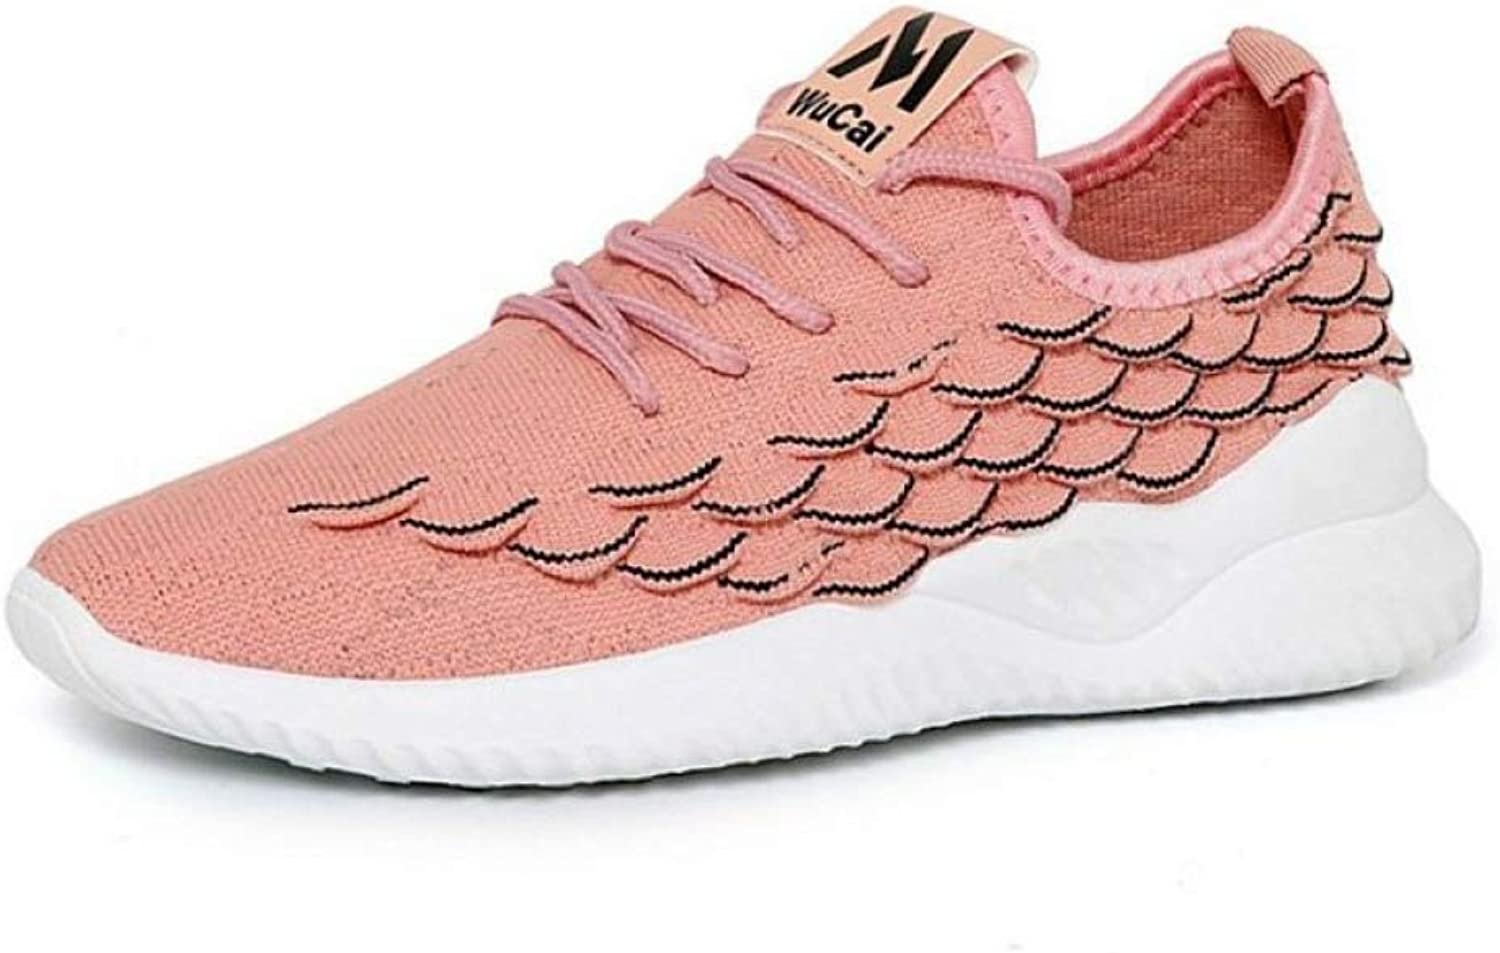 U-MAC Women's Sports Fashion Sneakers Chunky Platform Lace Up Breathable Light Tennis Running Athletics shoes